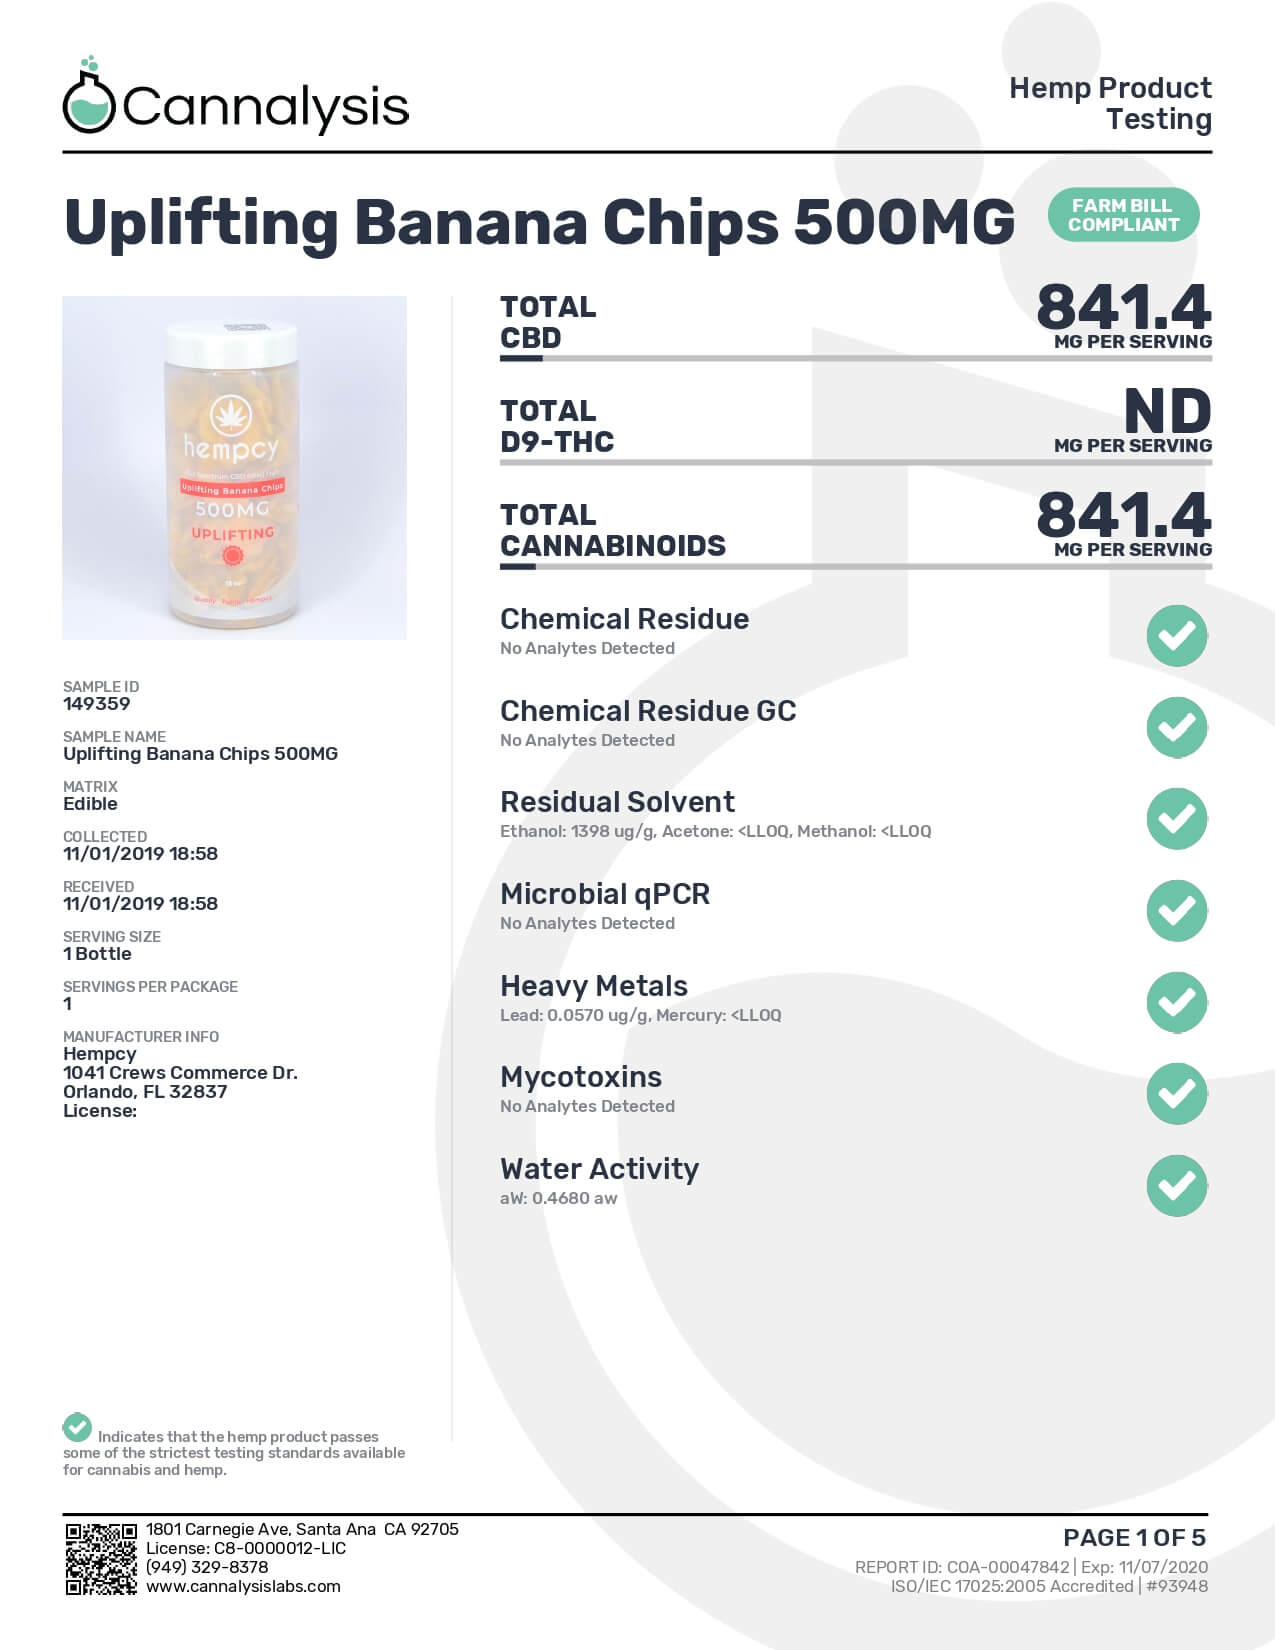 Hempcy CBD Edible Uplifting Banana Chips Lab Report